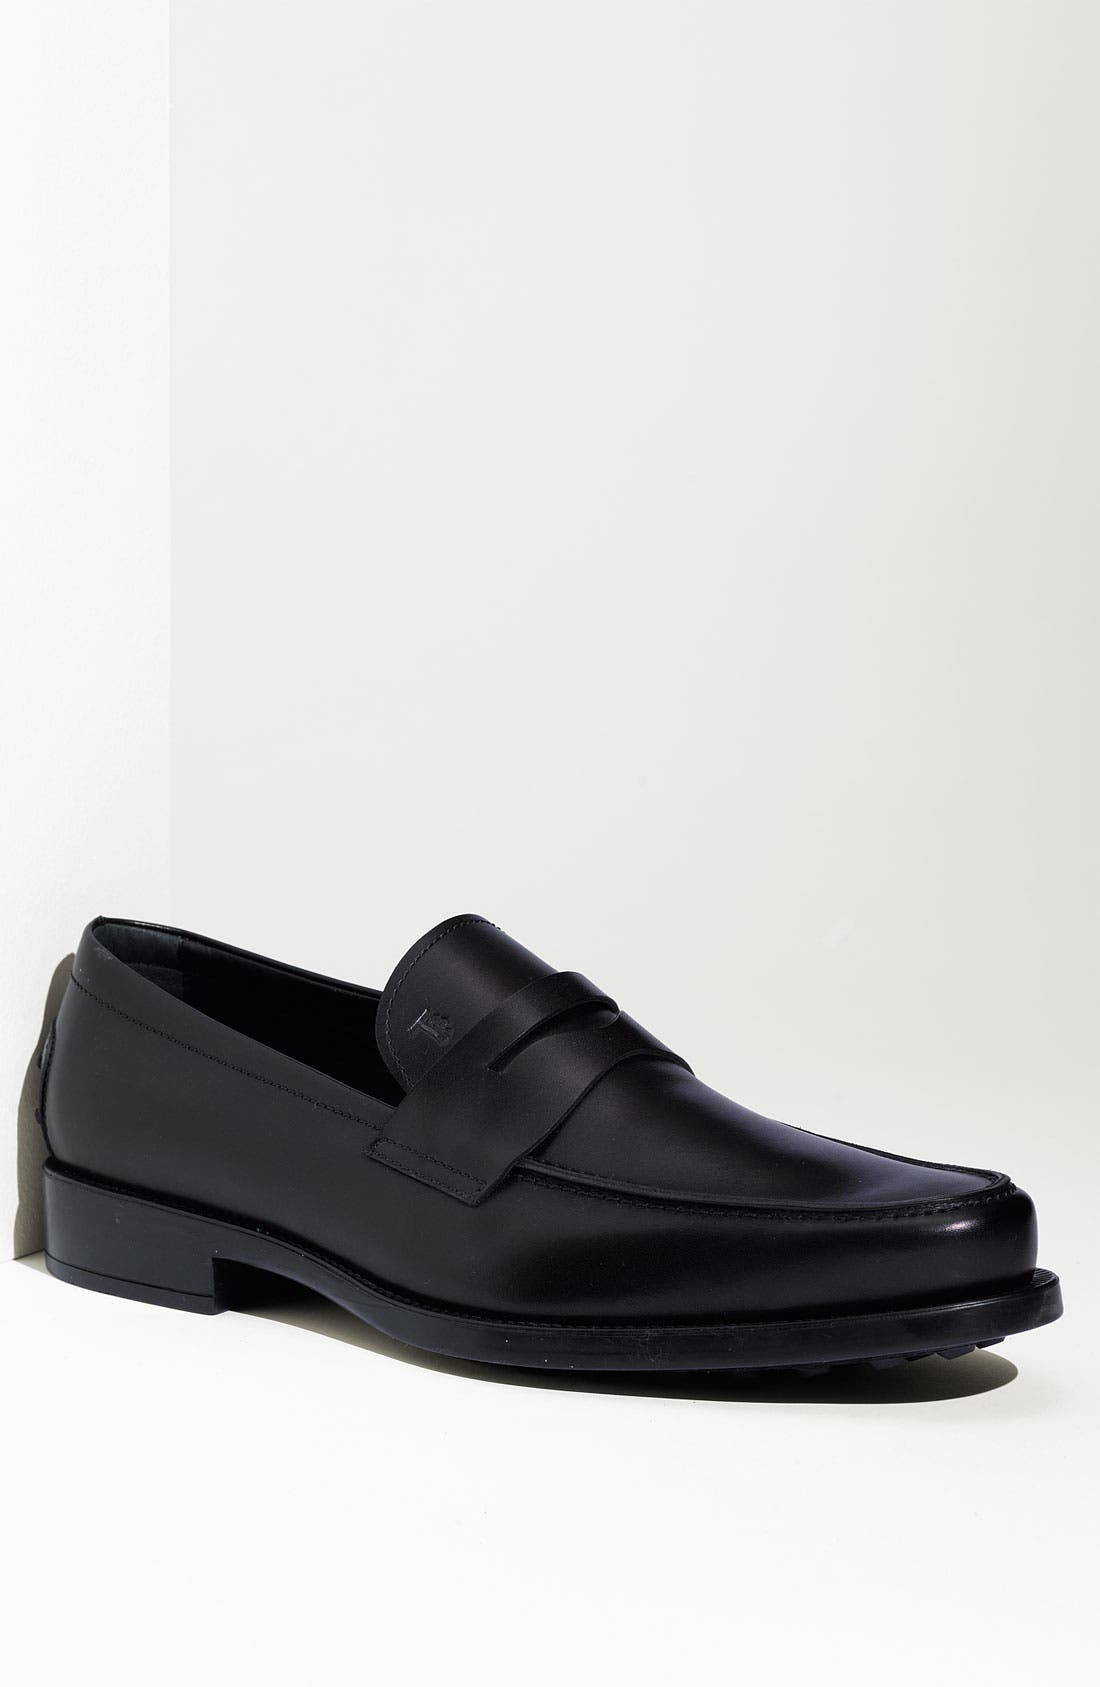 Alternate Image 1 Selected - Tod's 'Boston' Penny Loafer